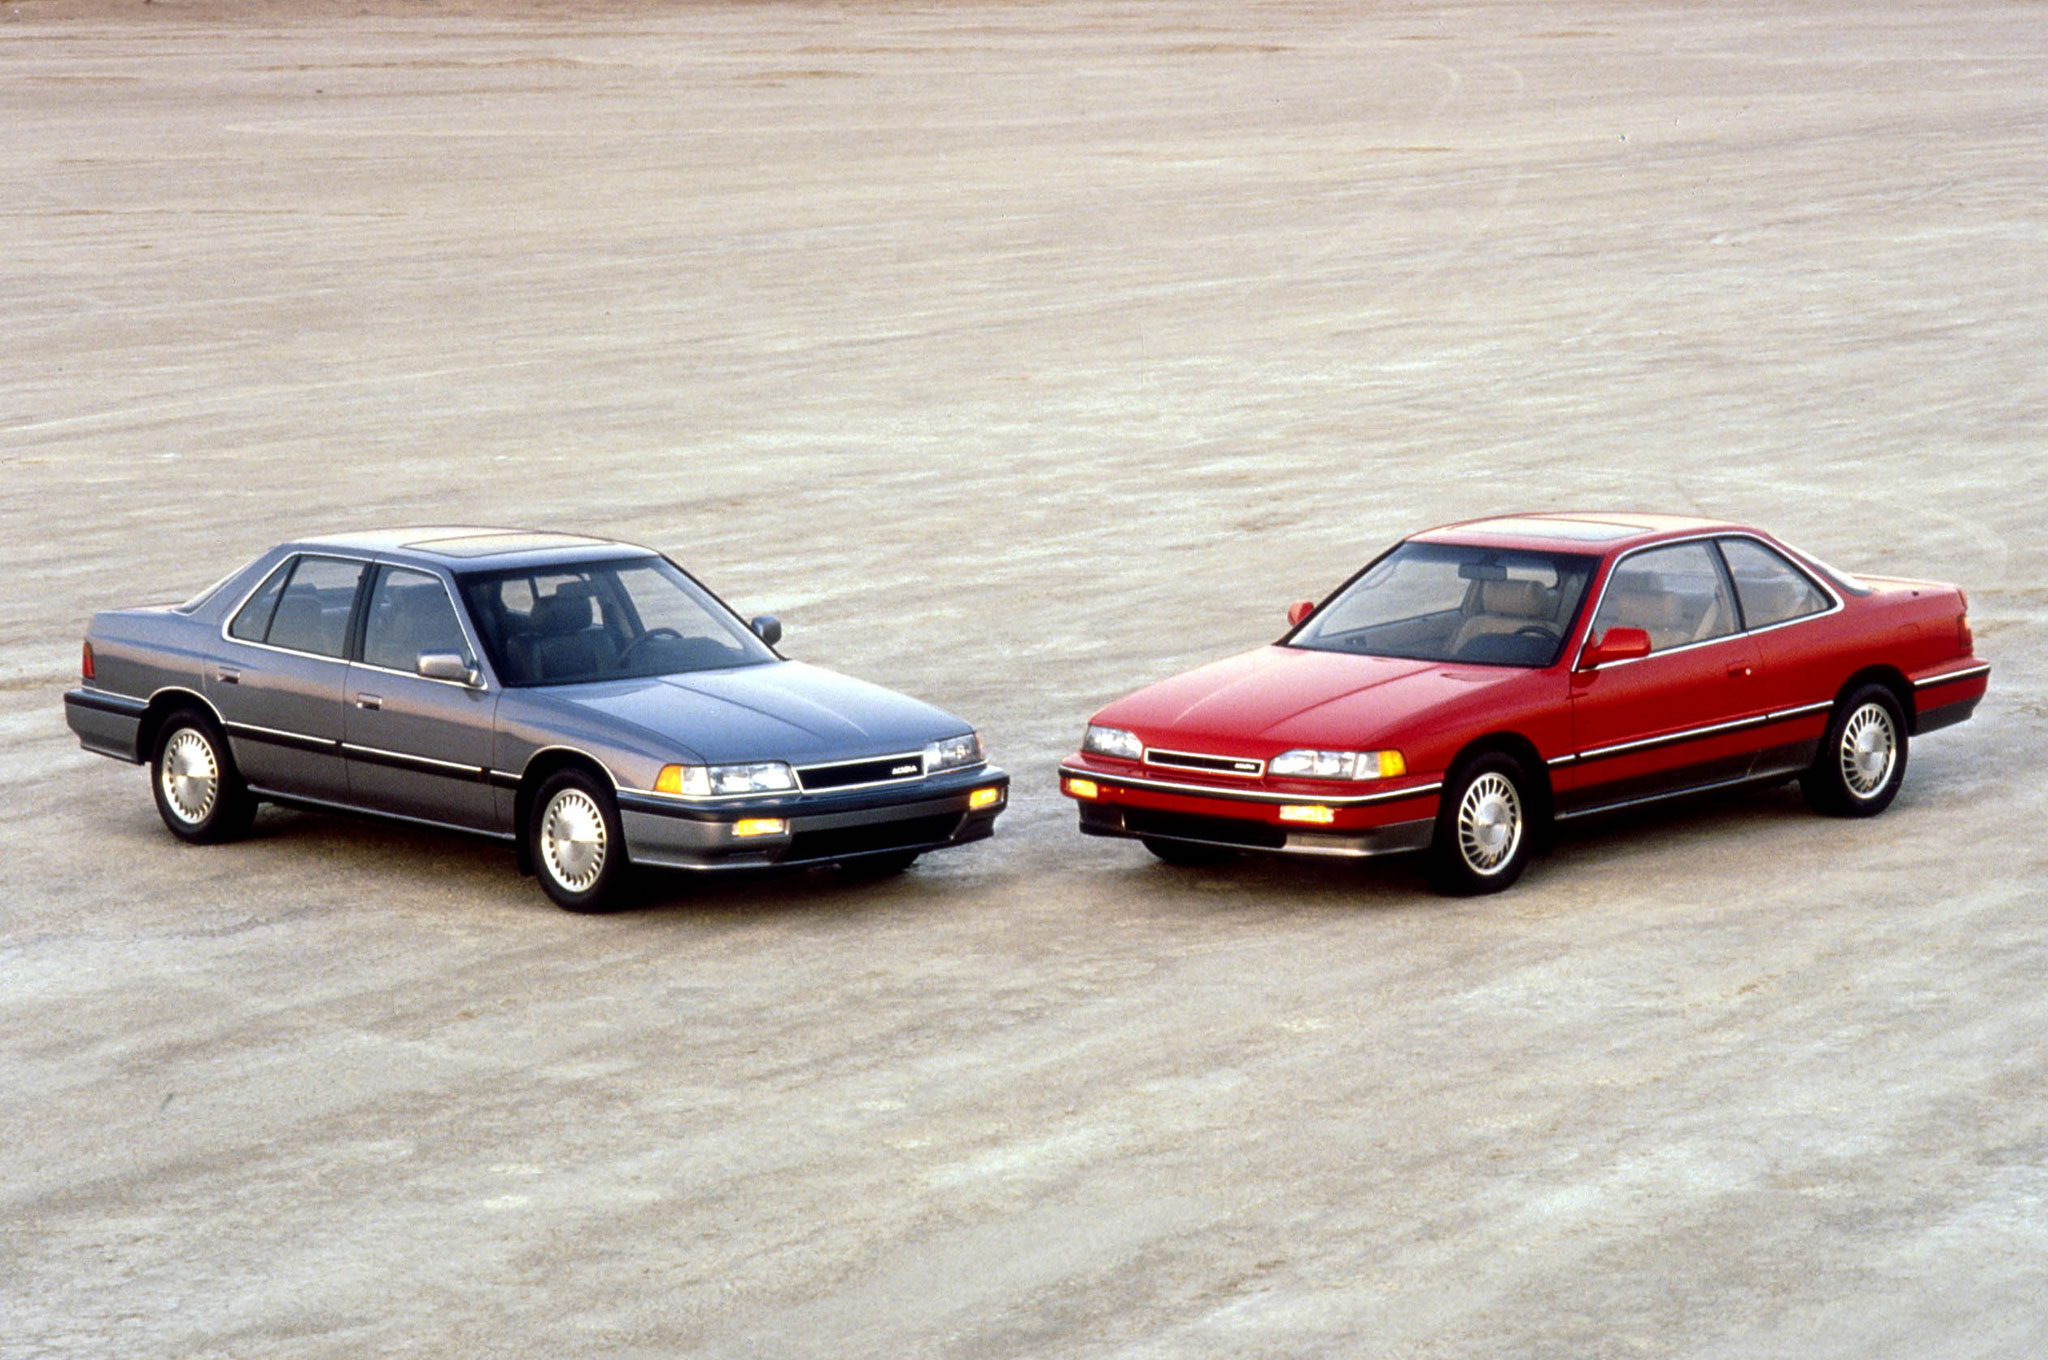 Acura Legend (1986-1996)